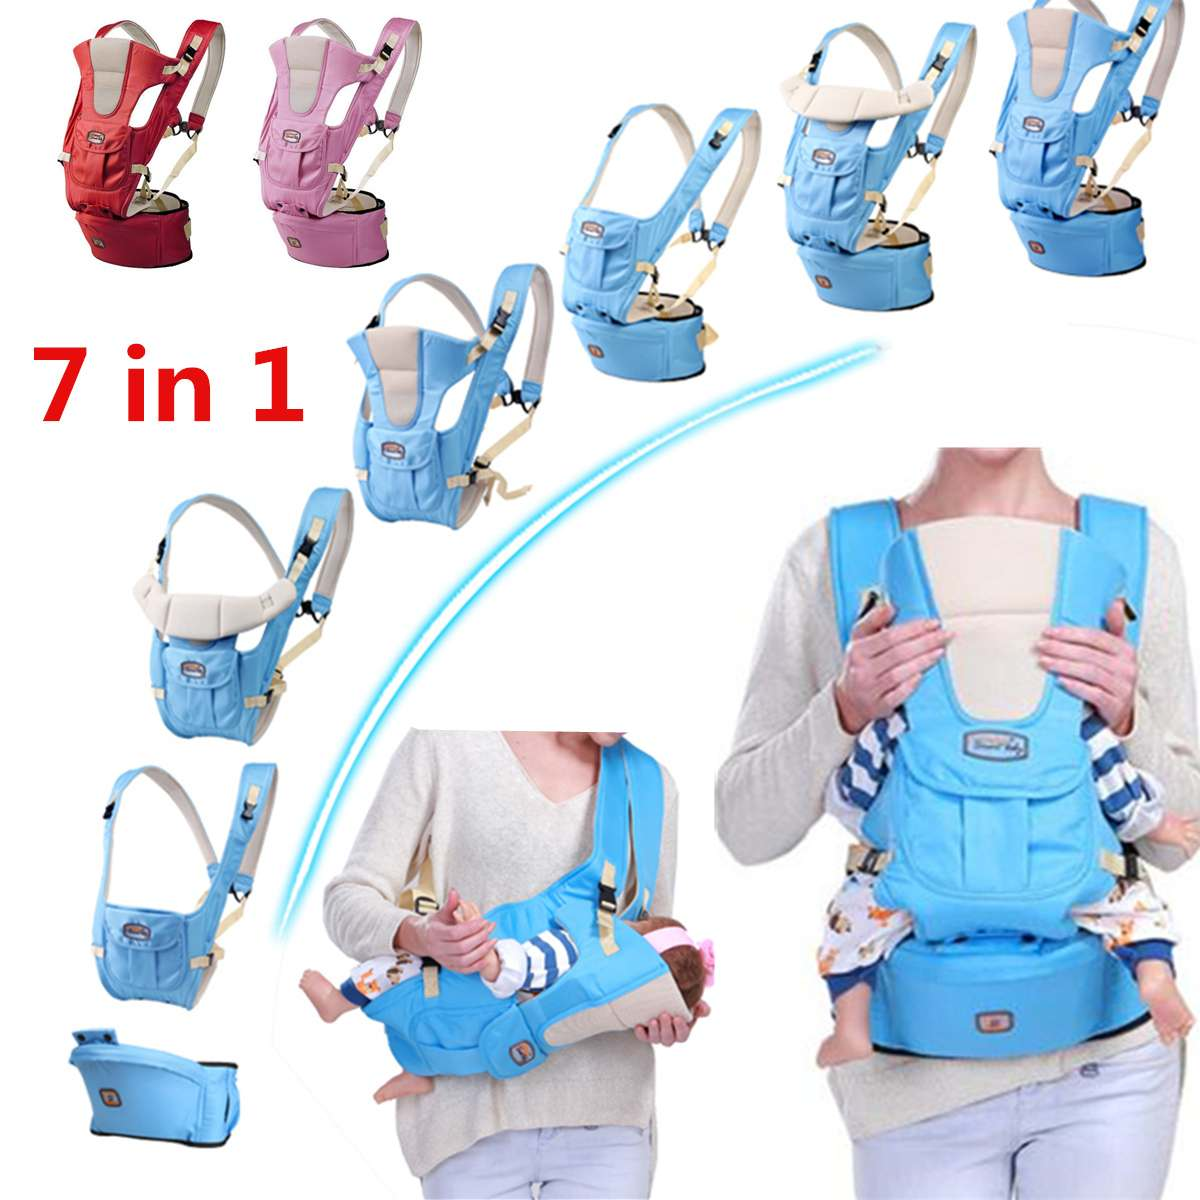 7 In 1 Adjustable Baby Infant Sling Carrier Breathable Ergonomic Wrap Backpack Baby Carriers 0-30 Months Infant Comfortable Wrap